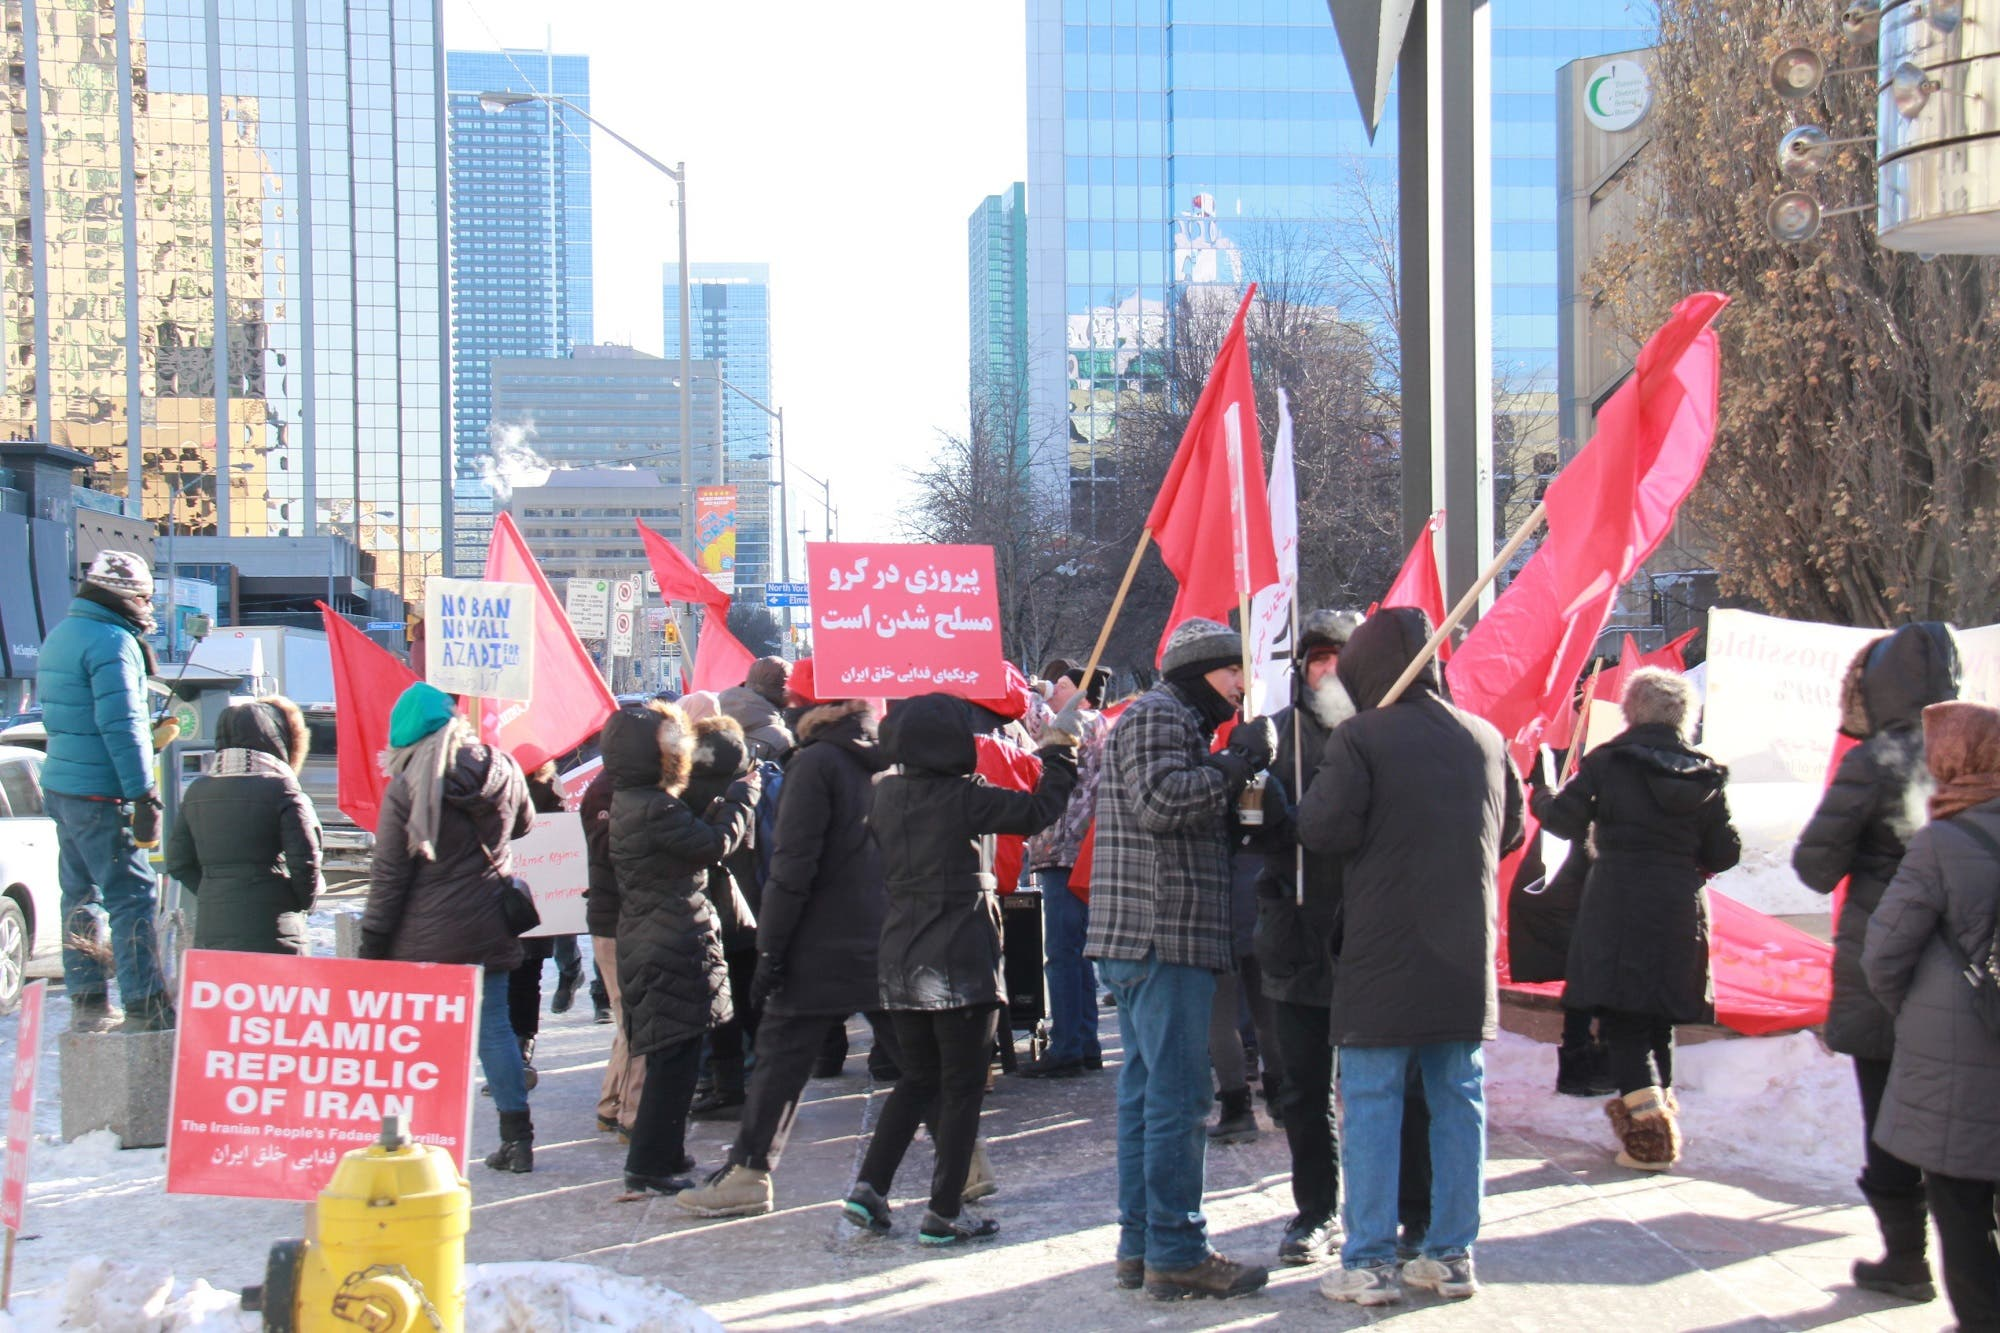 One of the organizers said multiple protests were taking place in various locations in Toronto. (Supplied)